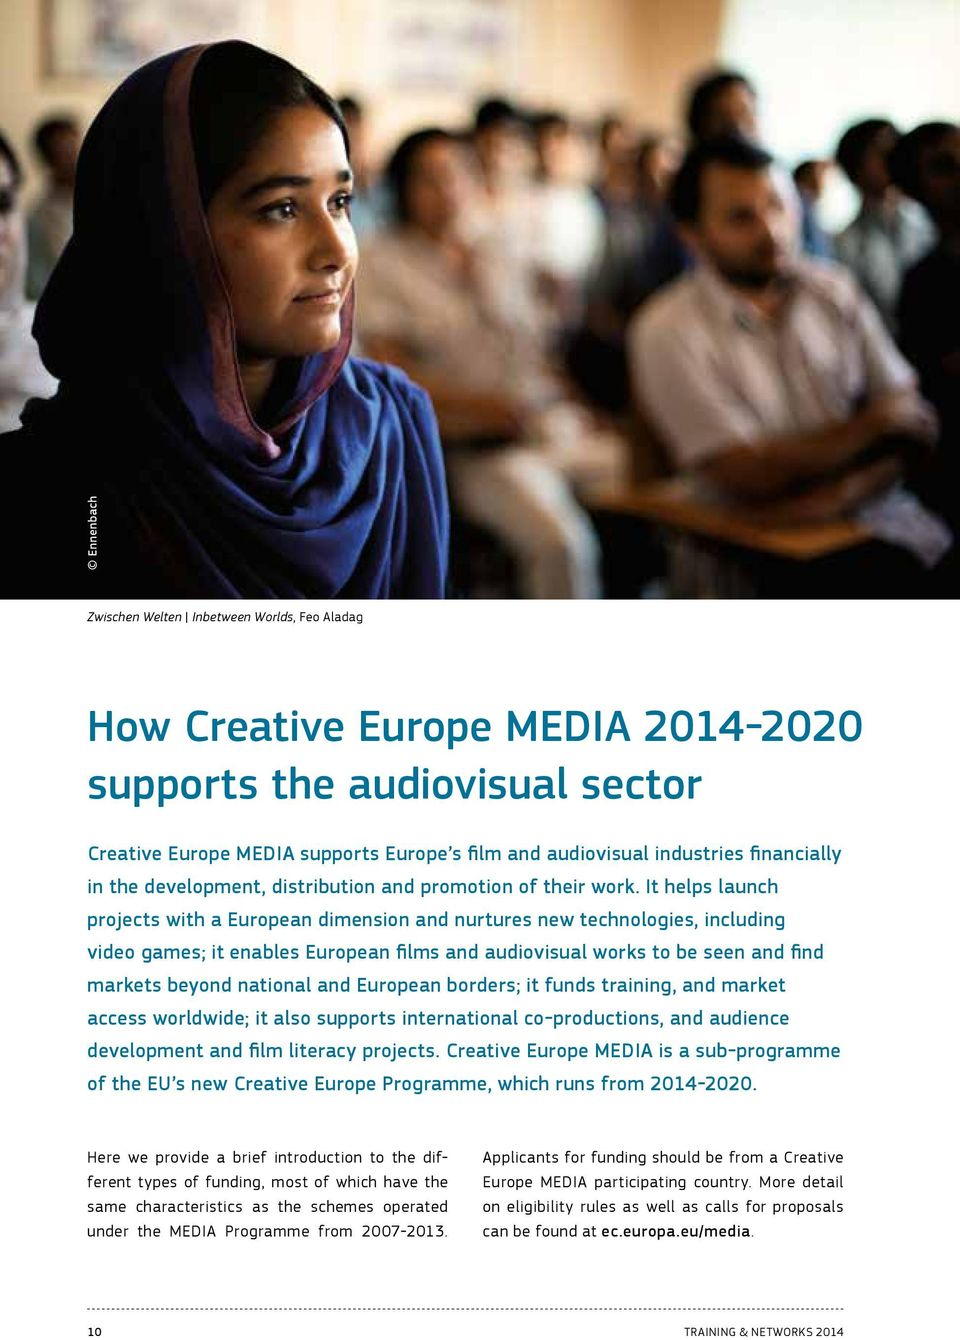 It helps launch projects with a European dimension and nurtures new technologies, including video games; it enables European films and audiovisual works to be seen and find markets beyond national